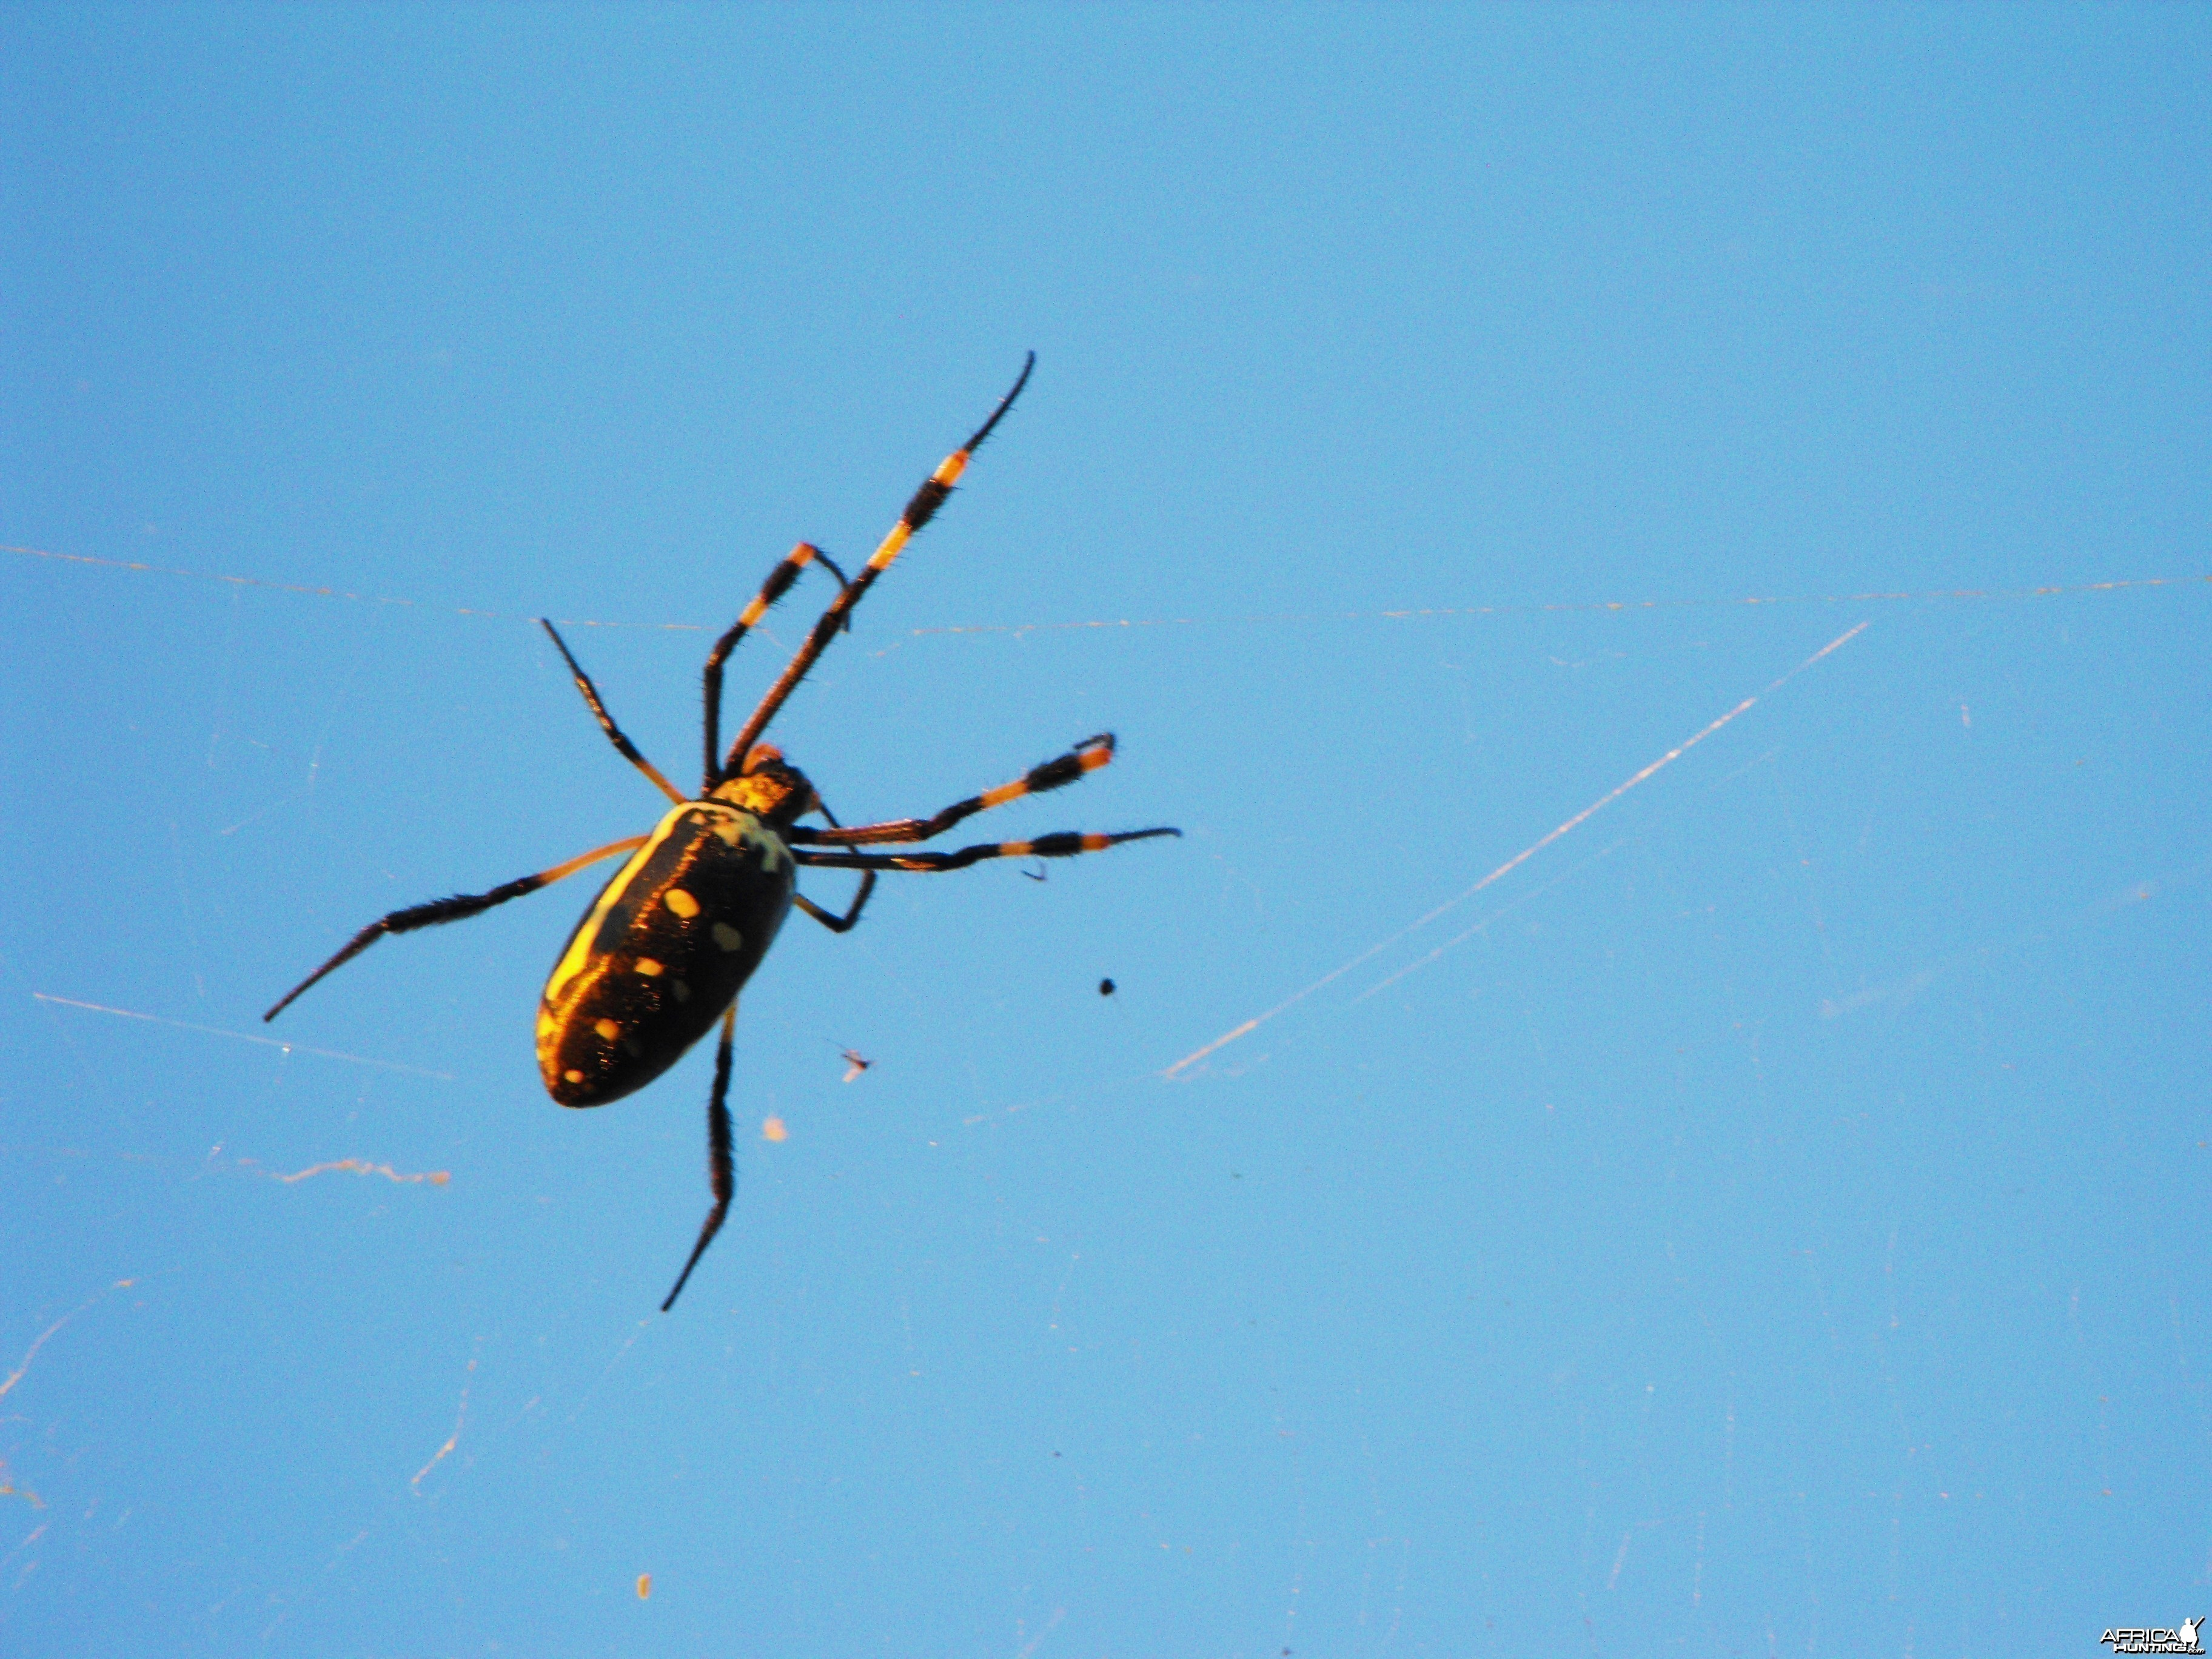 Classic and Massive species of orb weaver spider